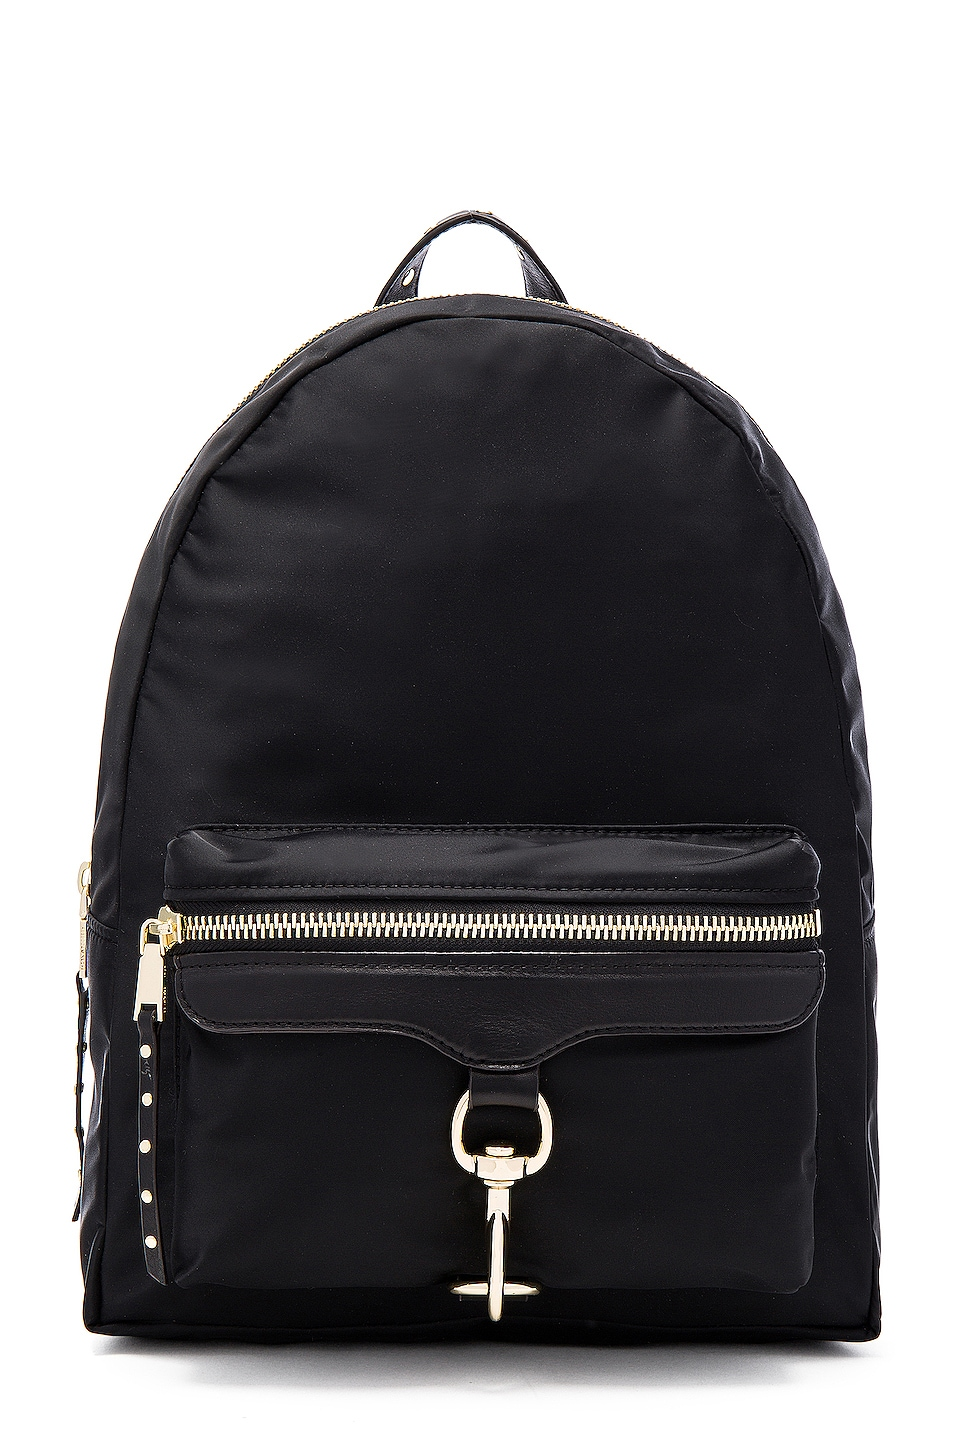 Rebecca Minkoff Always On Mab Backpack in Black